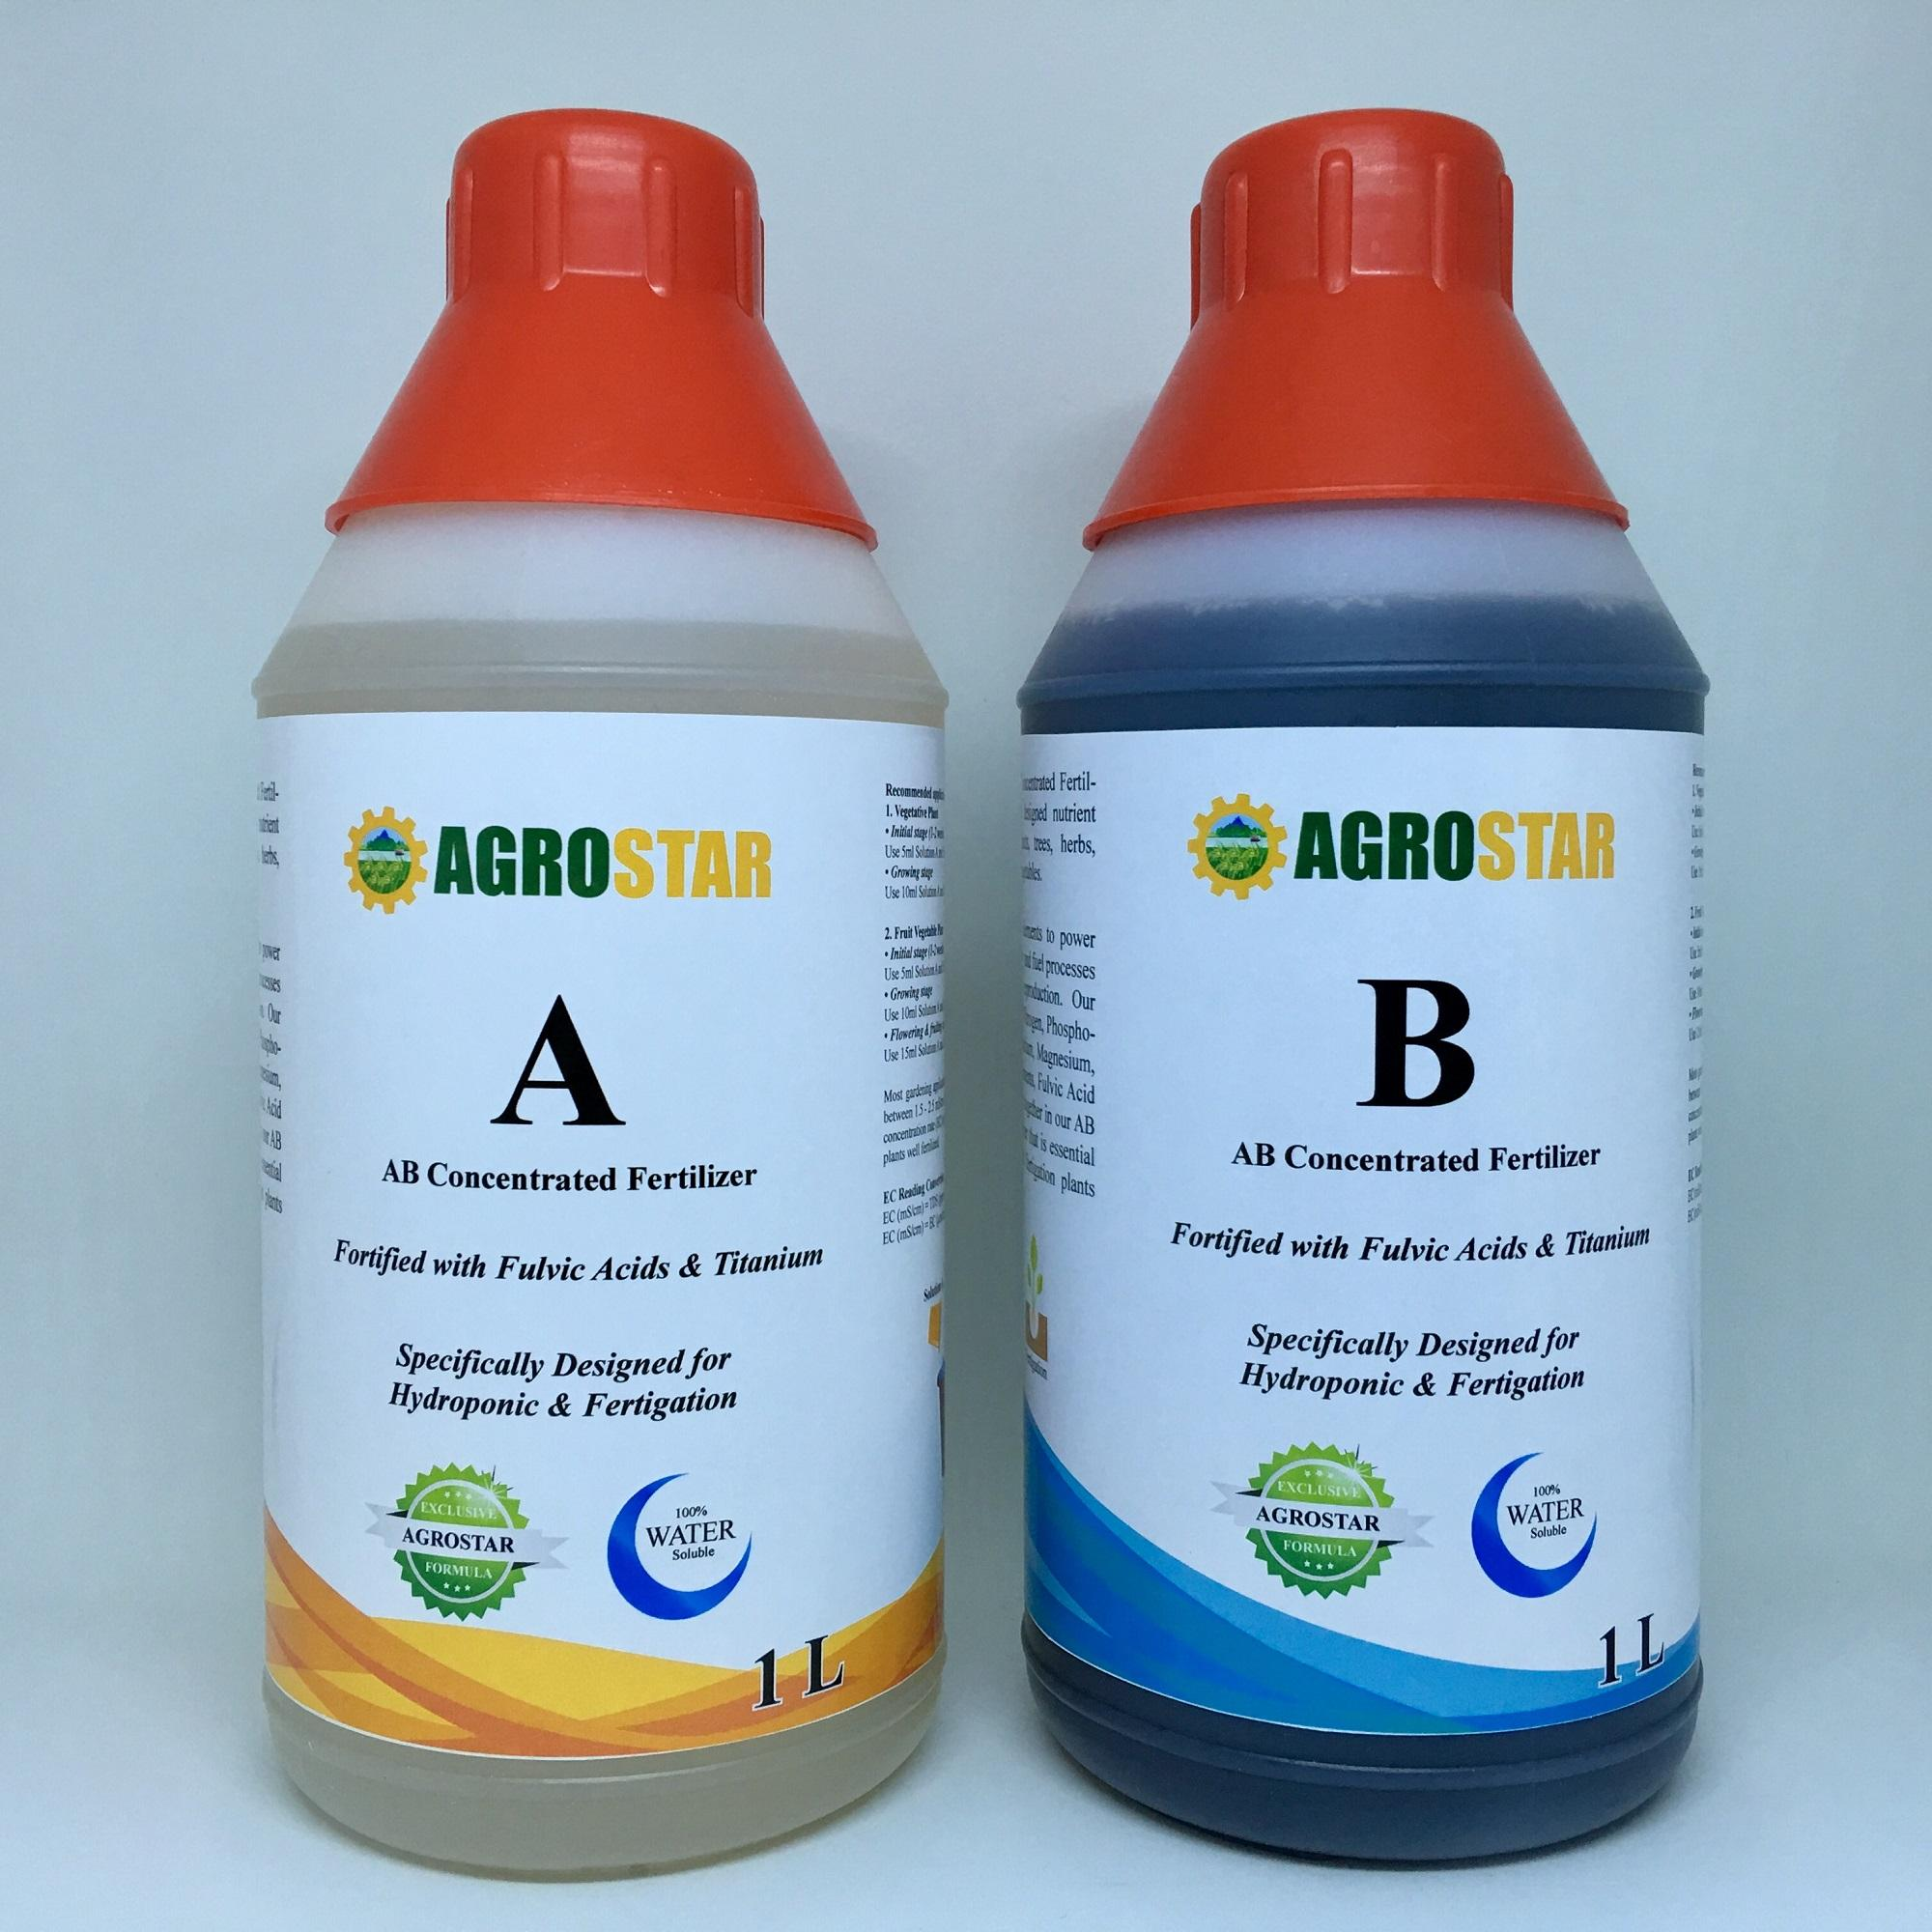 AGROSTAR AB NPK Concentrated Fertilizer Fortified with Fulvic Acids and Titanium specifically designed hydroponics and fertigation plants such as herbs, lettuce and other vegetables (2 Bottles x 1L)